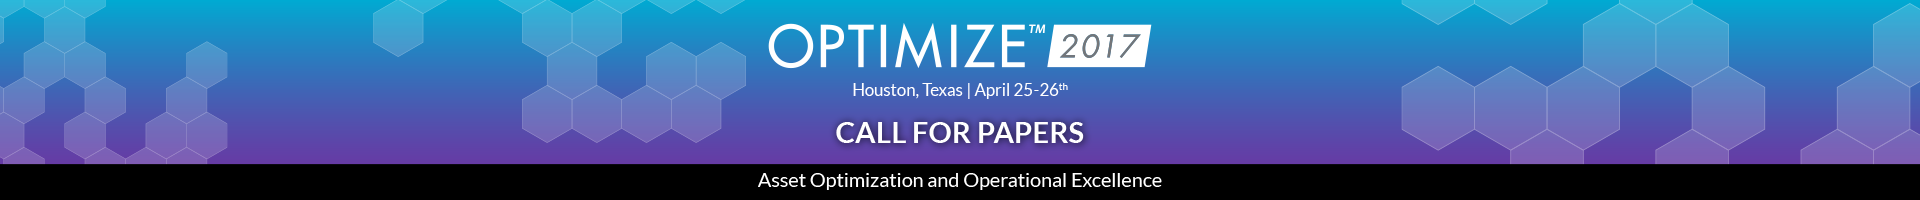 Call for Papers - OPTIMIZE 2017